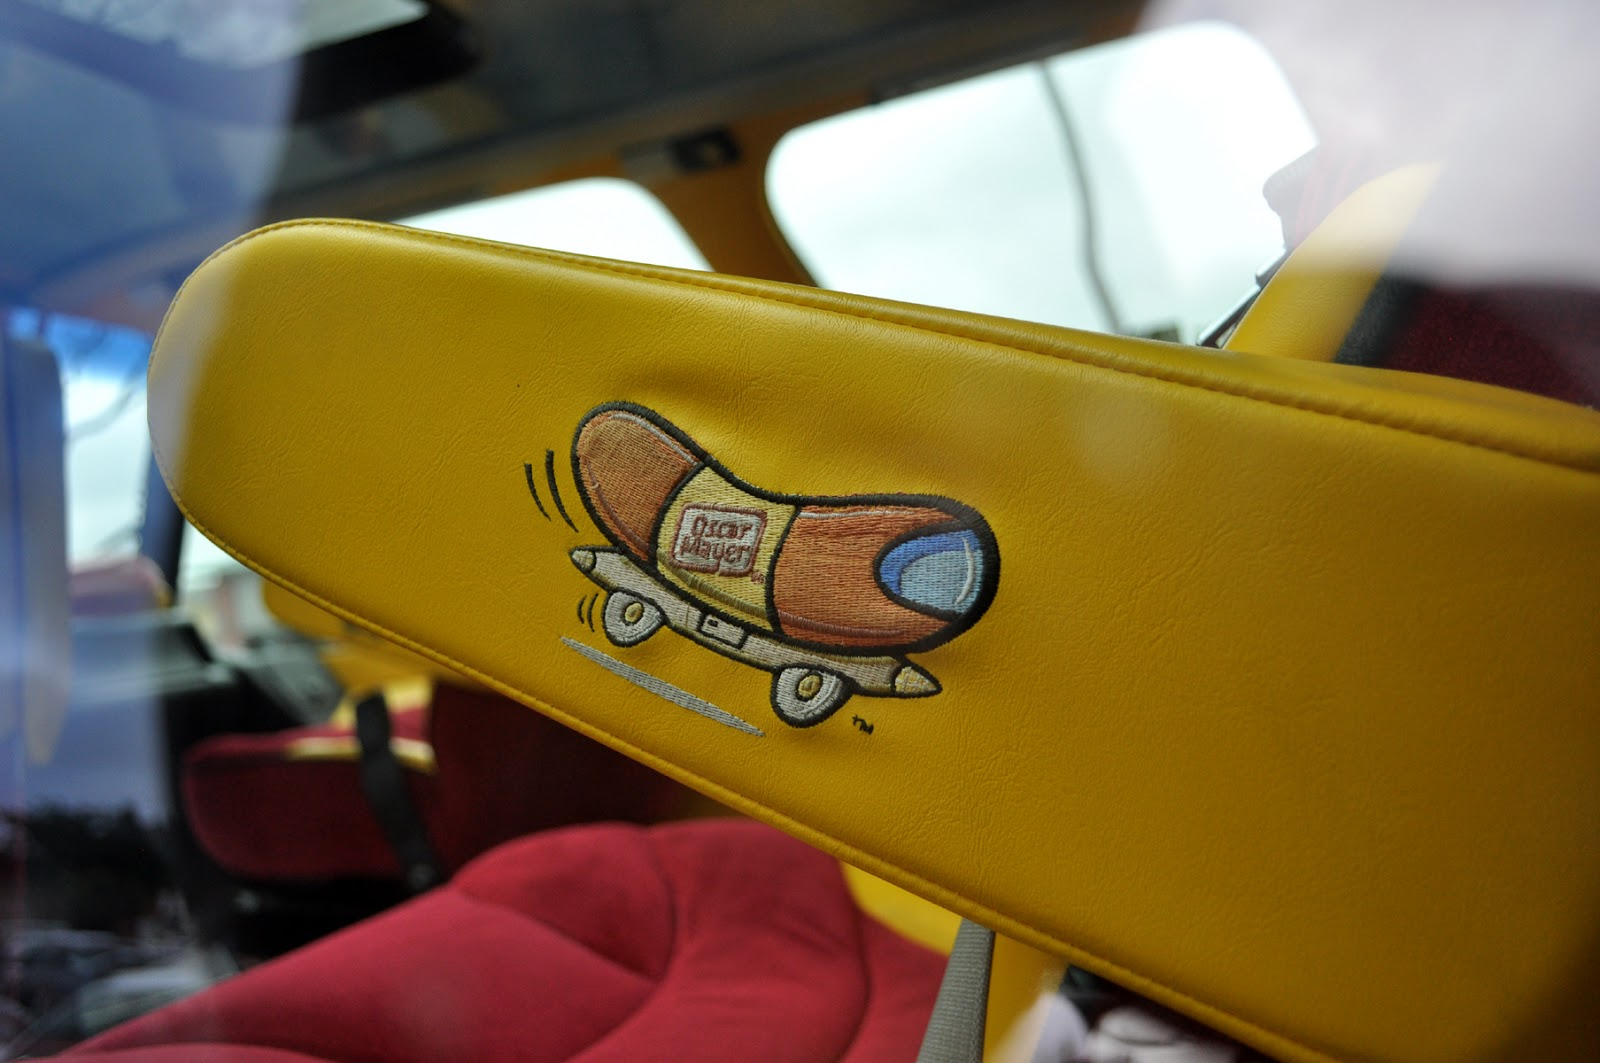 My Bologna Has First Name additionally The Henery Ford Museum in addition 1972 Bugazzi Custom Coupe as well Mustard Lovers Unite moreover Weinermobile. on oscar mayer weinermobile facebook pic